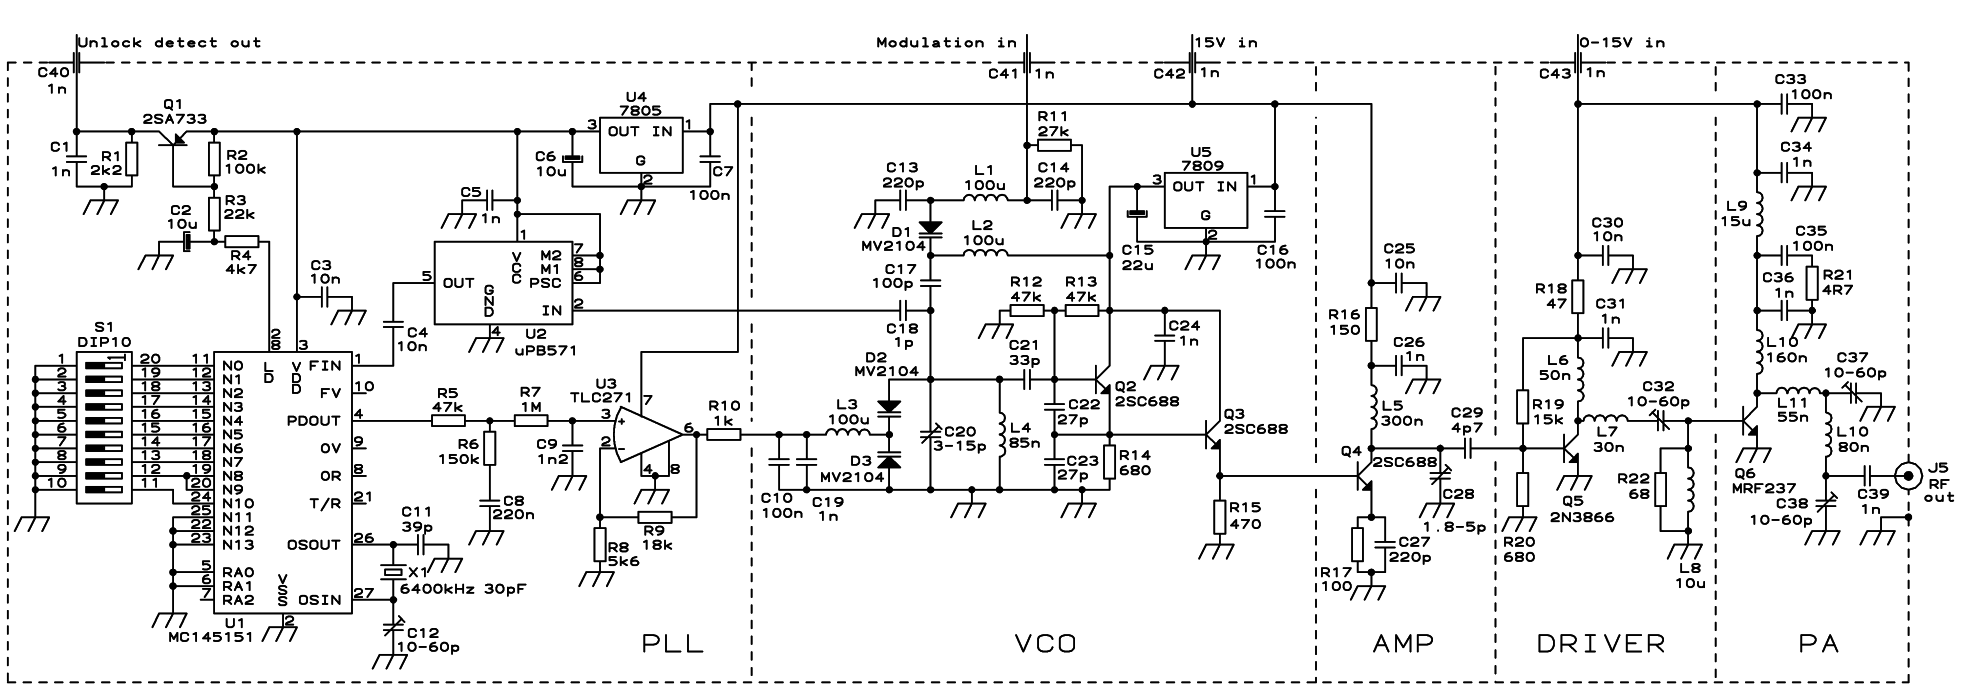 1000 Watts Power Amplifier Schematic Diagrams Pll Fm Transmitter Circuit